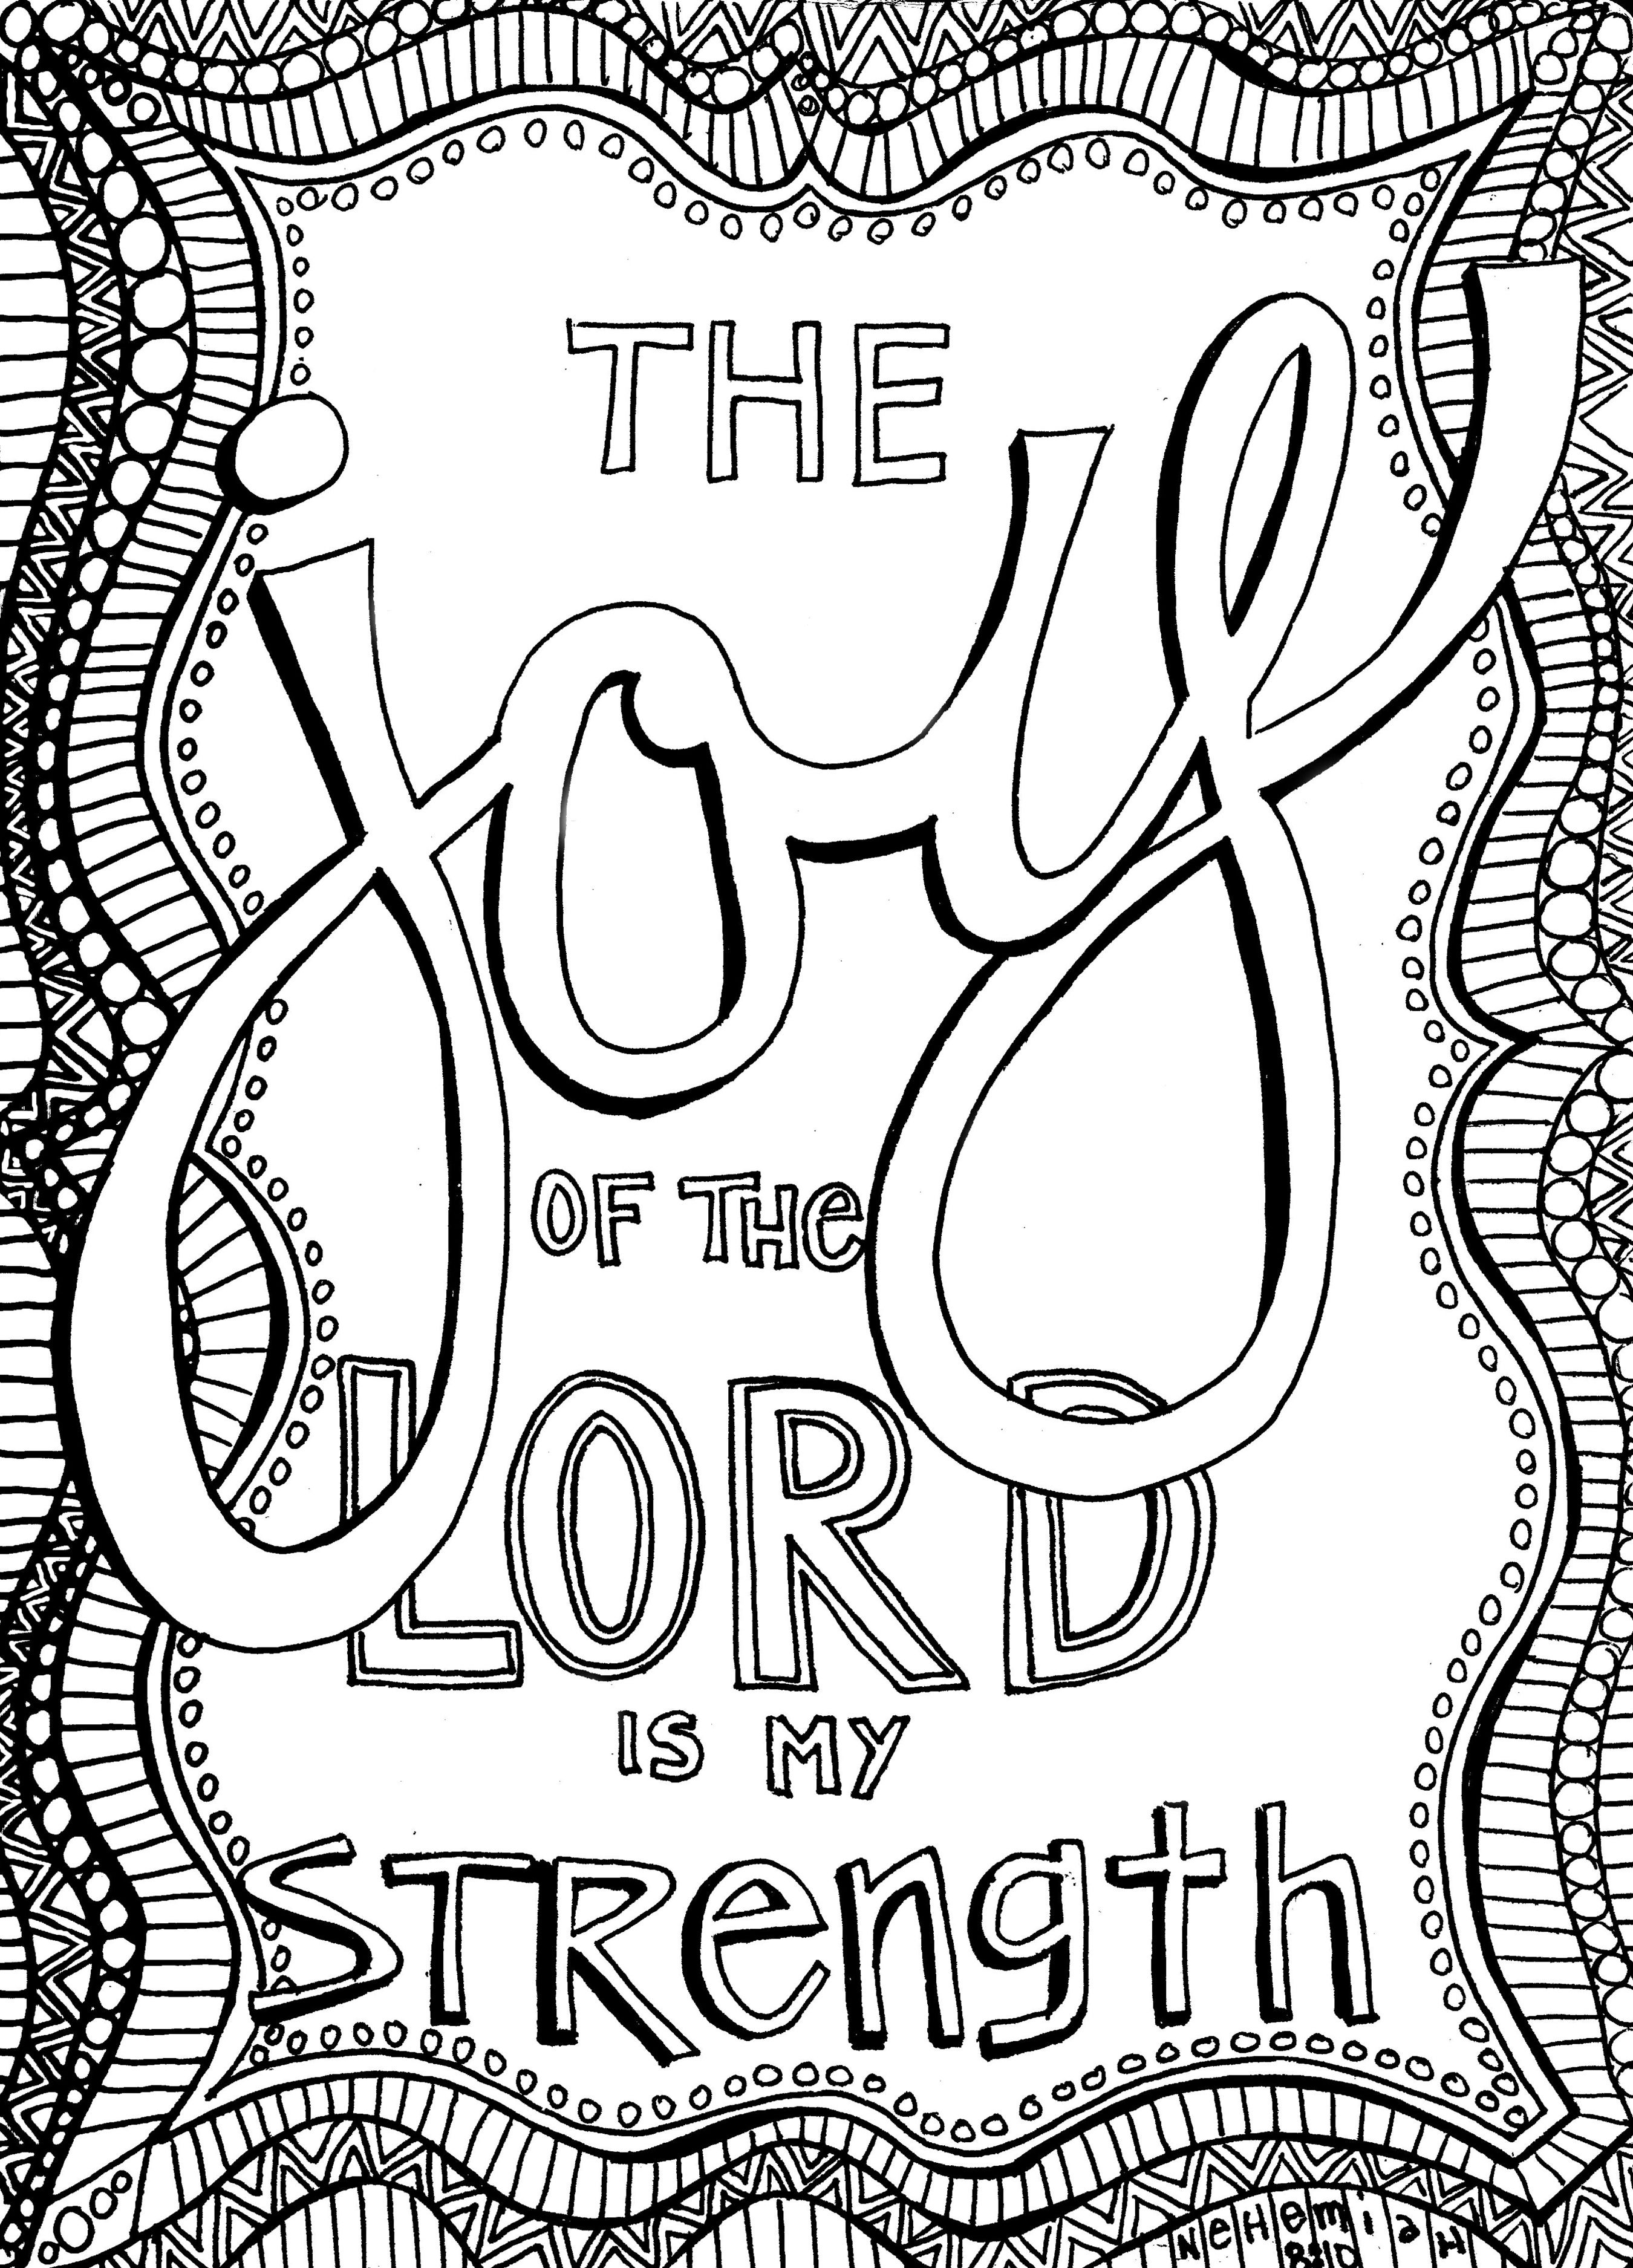 Christian Coloring Pages Printable - 8.7.kaartenstemp.nl • - Free Printable Christian Coloring Pages